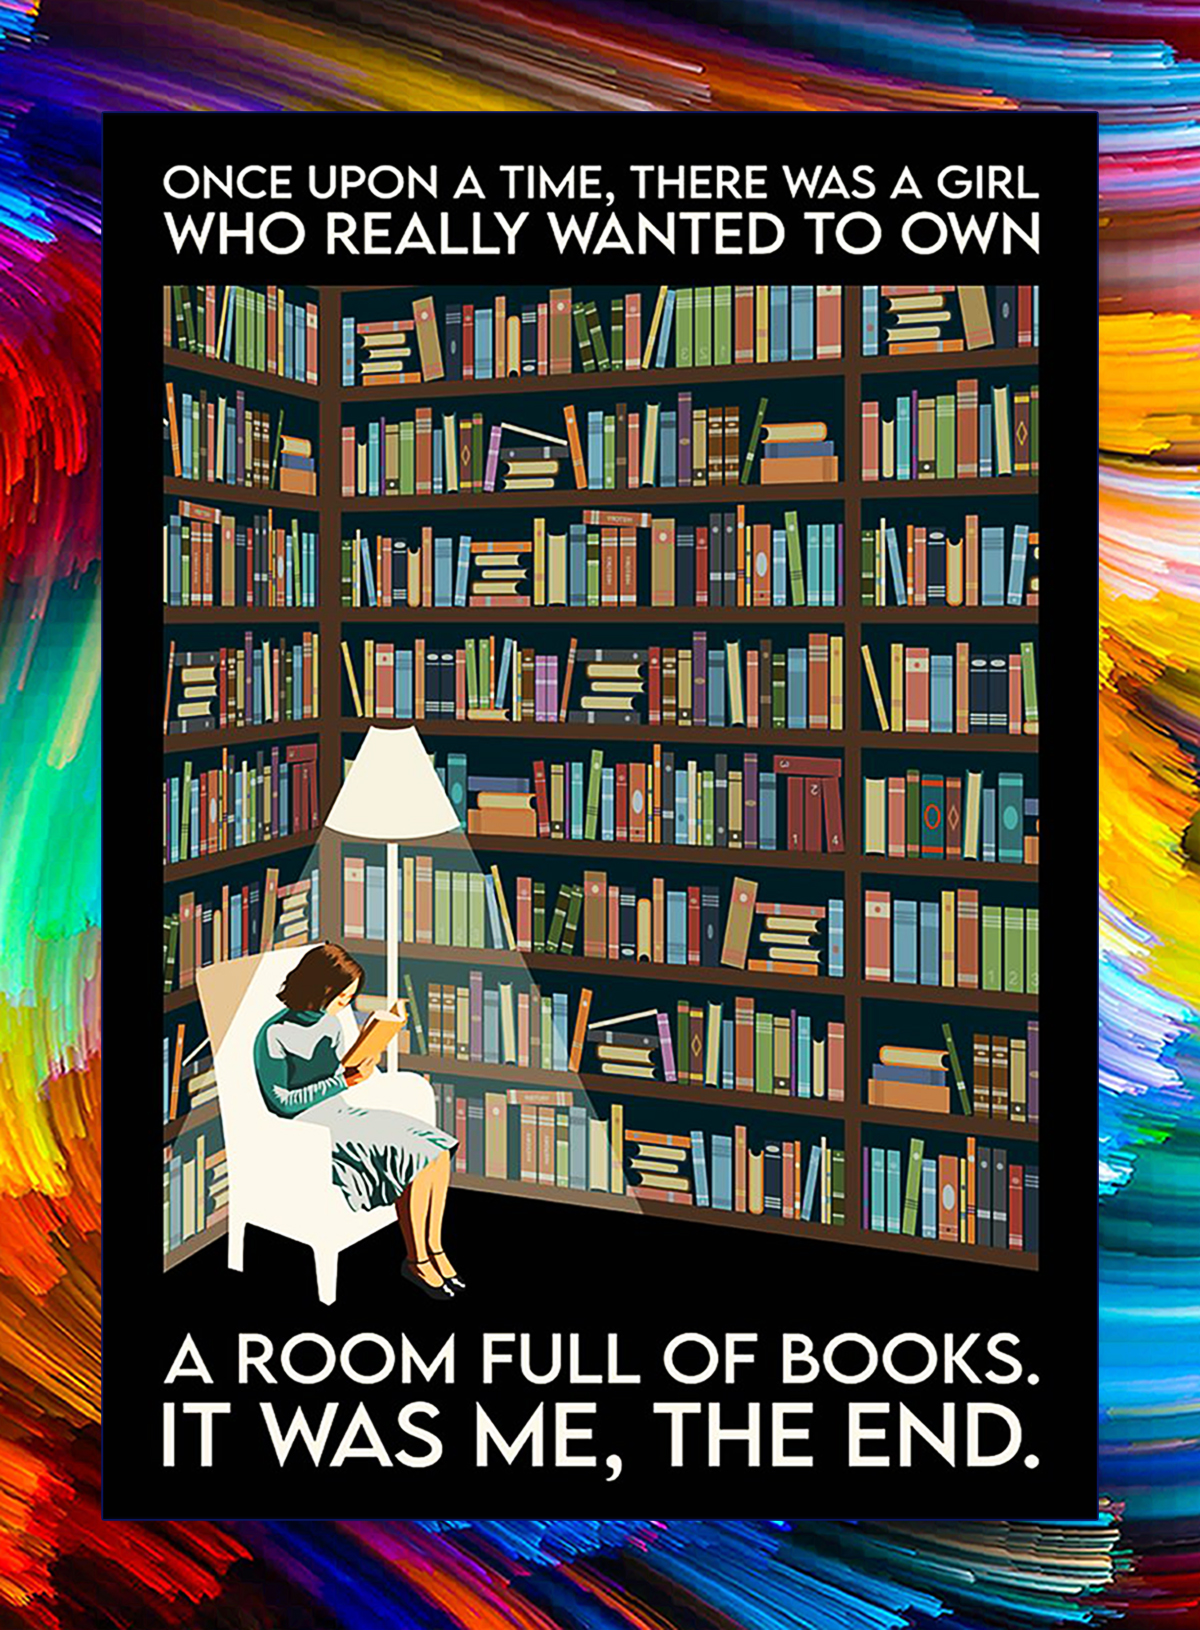 Once upon a time there was a girl who really wanted to own a room full of books poster - A1